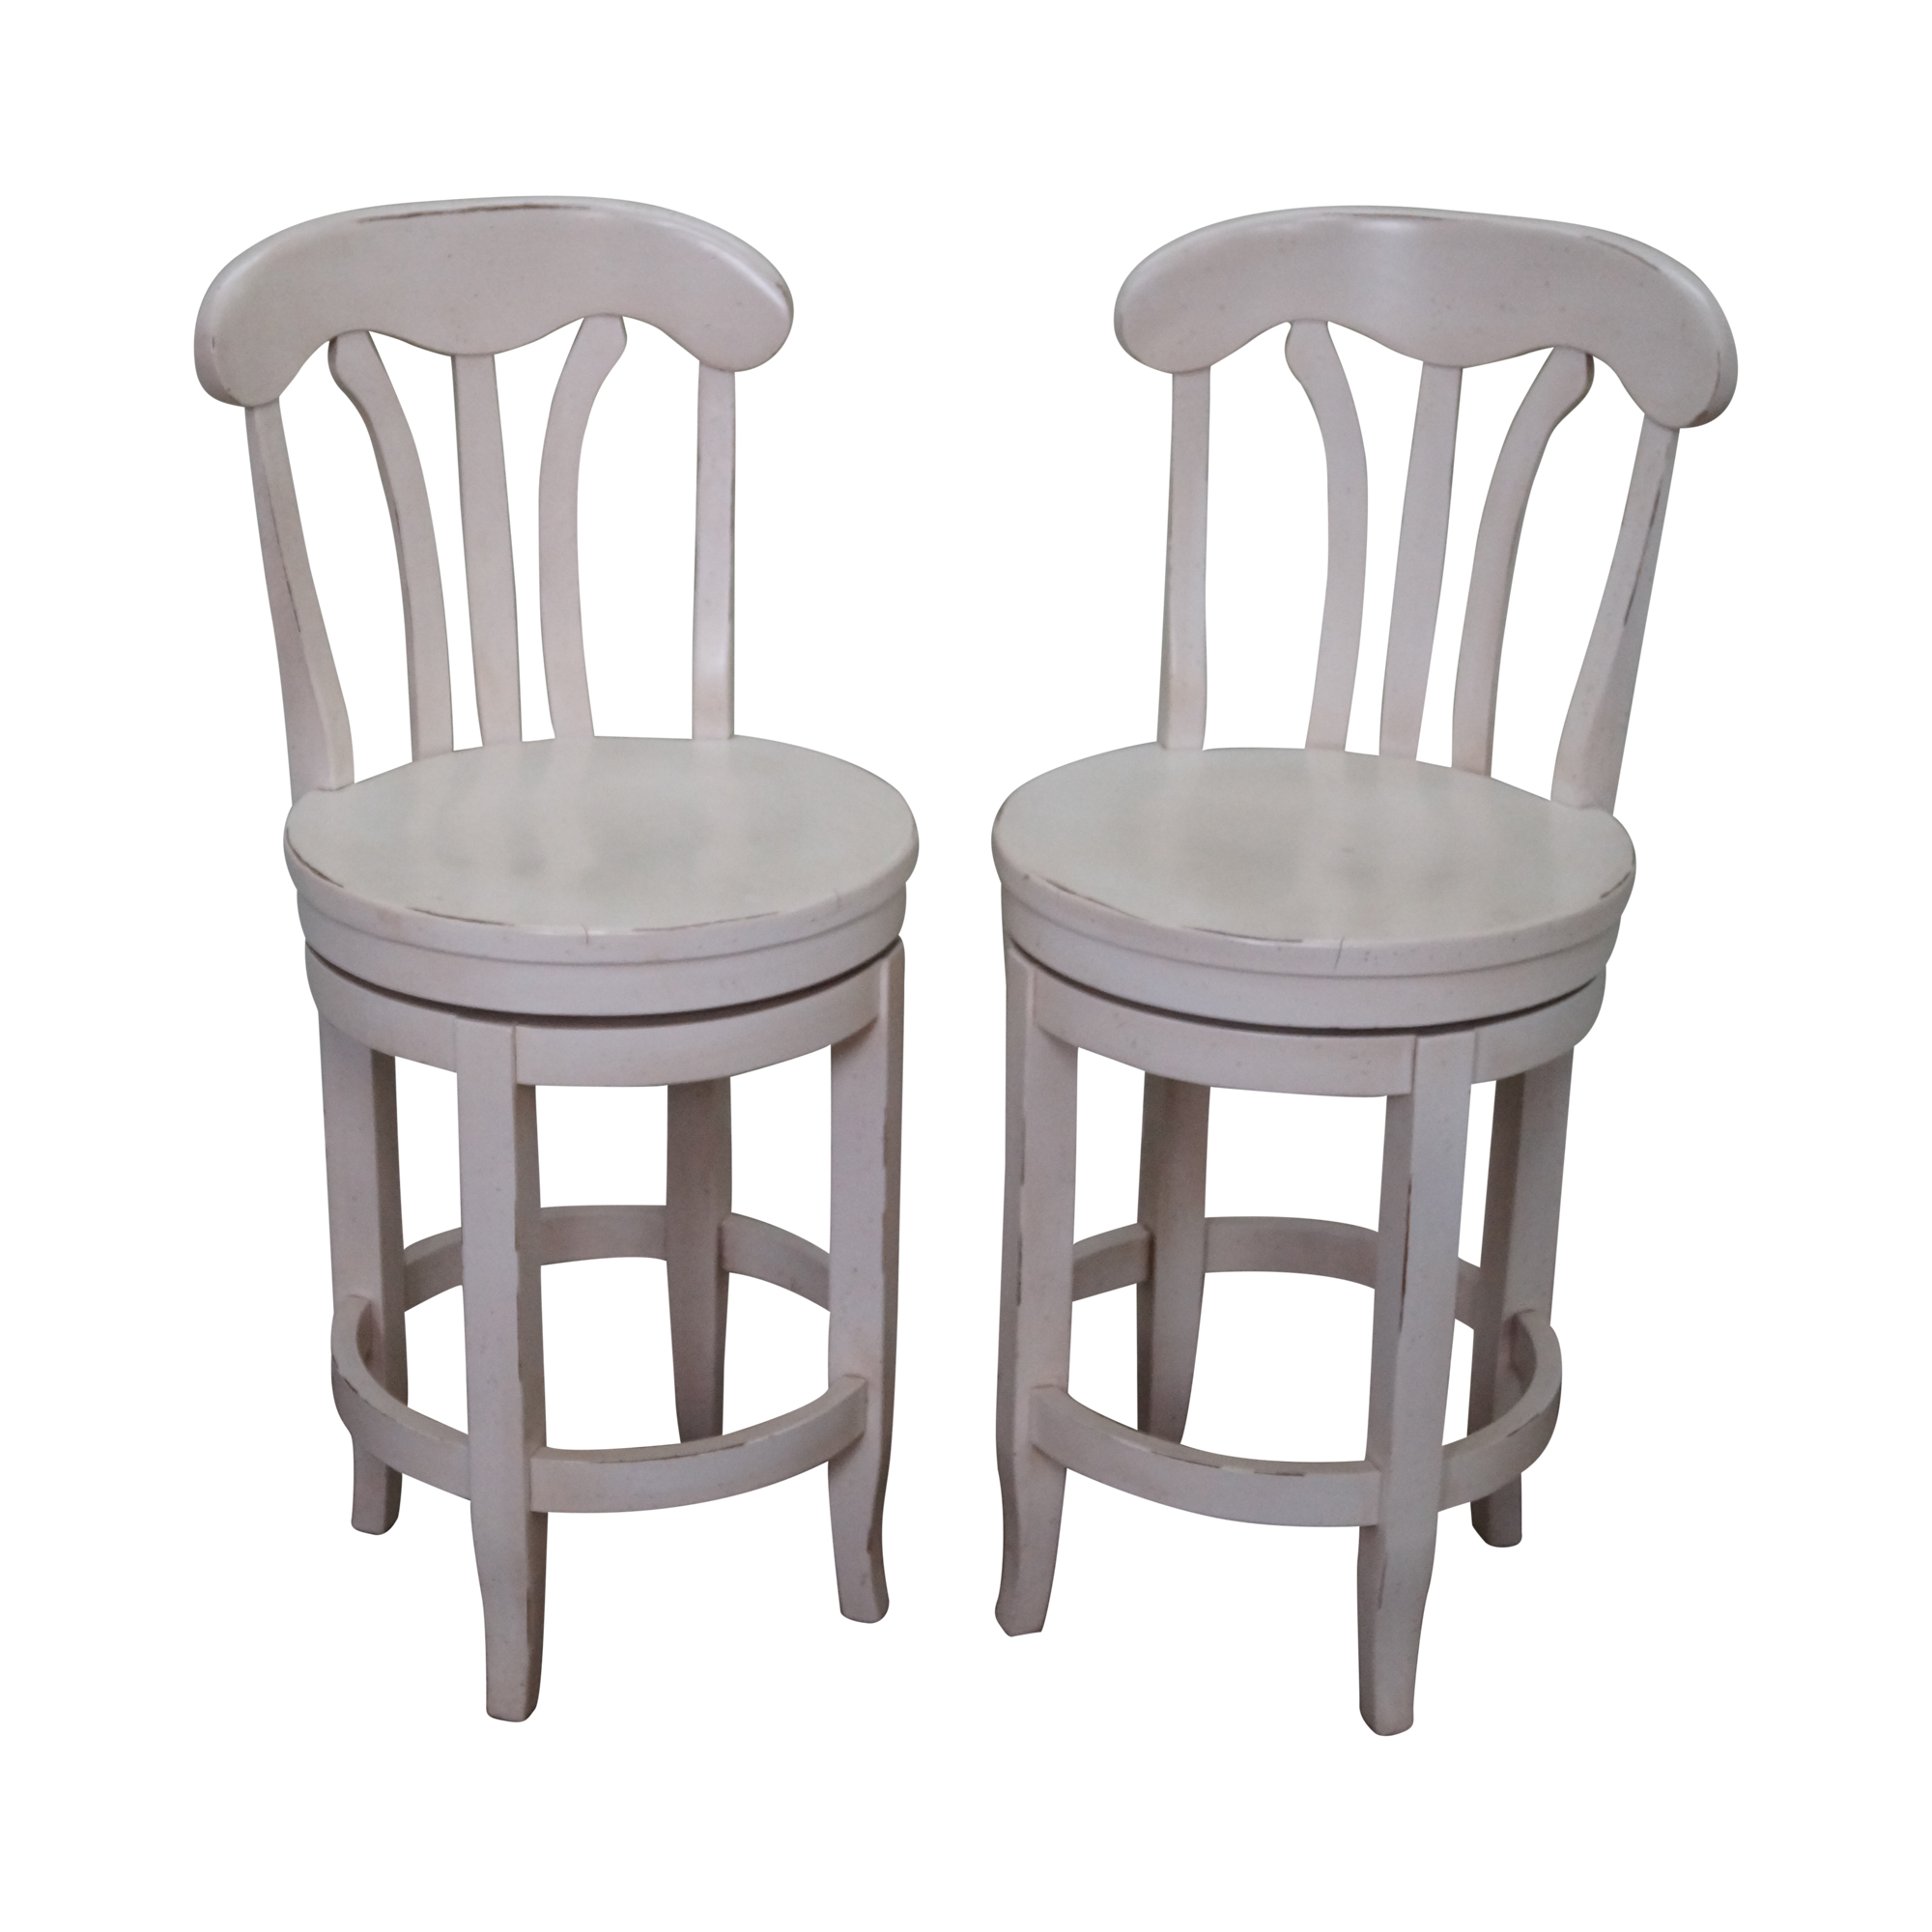 Vintage Amp Used White Counter Stools Chairish